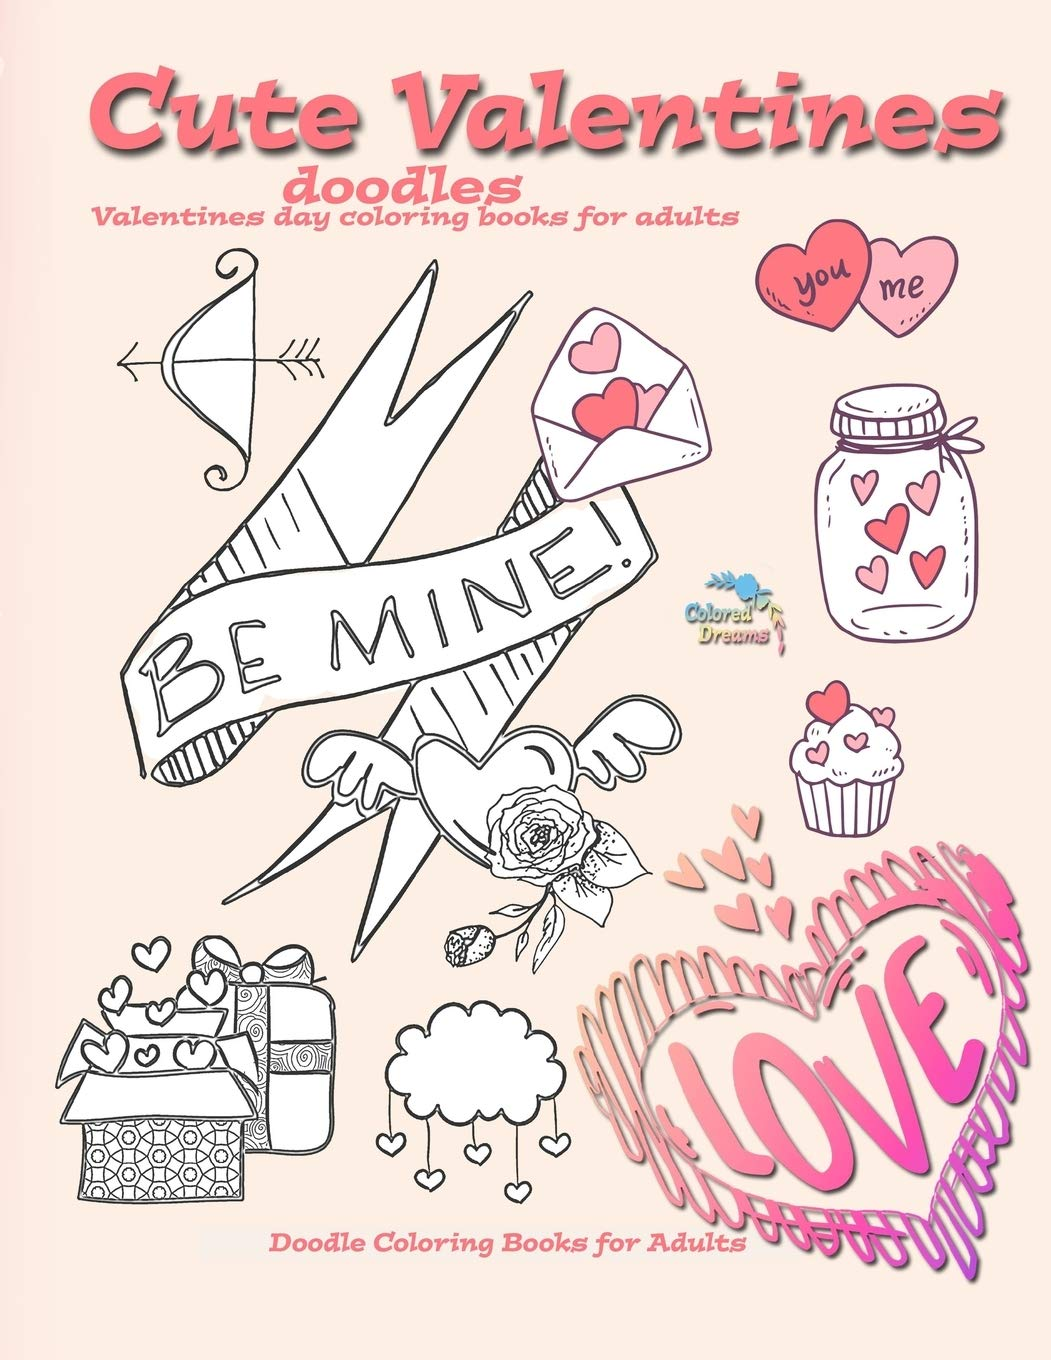 - Cute Valentines Doodles Valentines Day Coloring Books For Adults